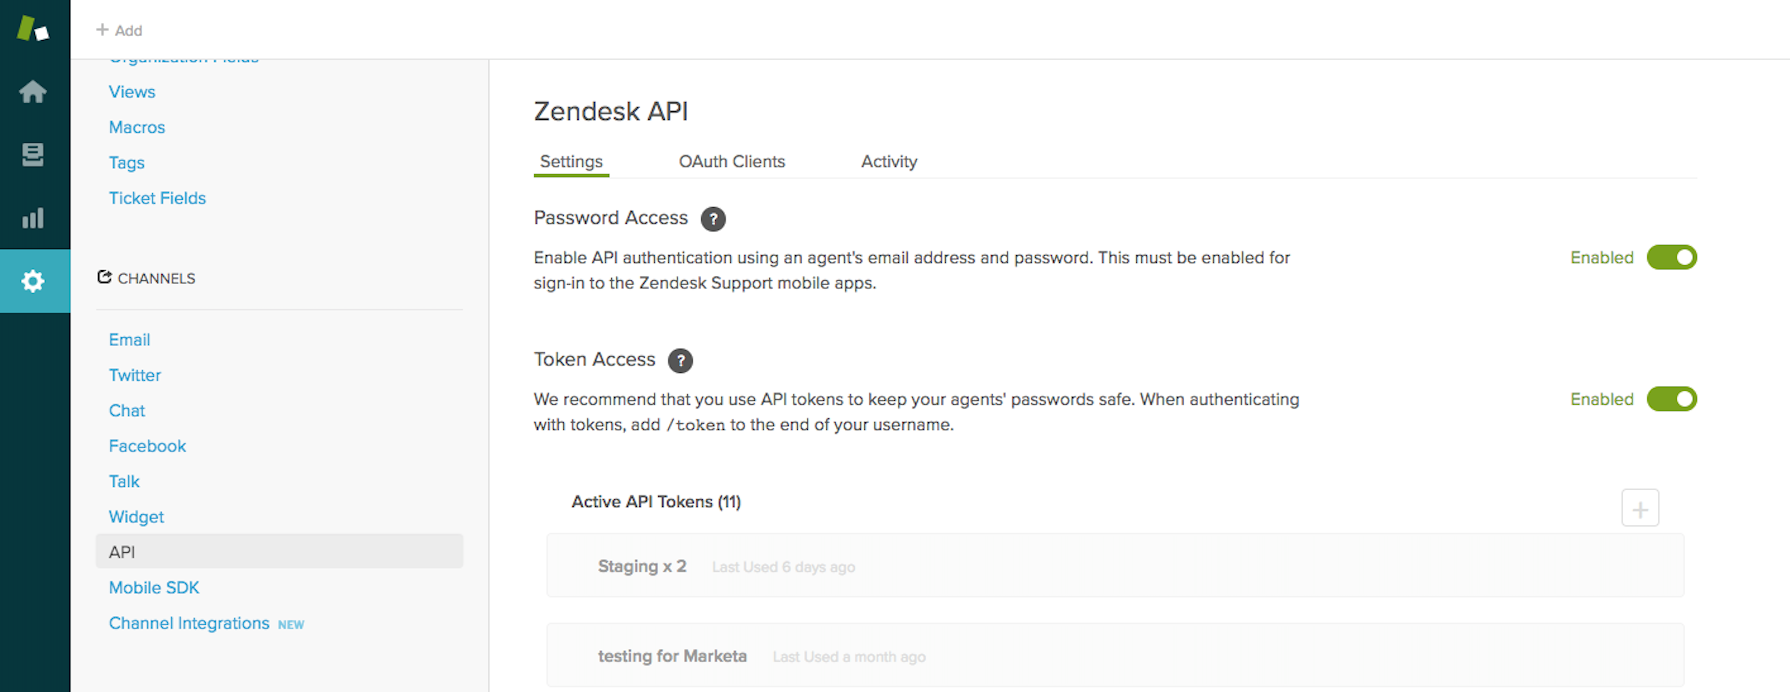 Marvelous Please Note API Access Only Zendesk Admins Or Agents Can Access The API.  Itu0027s Not Available To Light Agents. Design